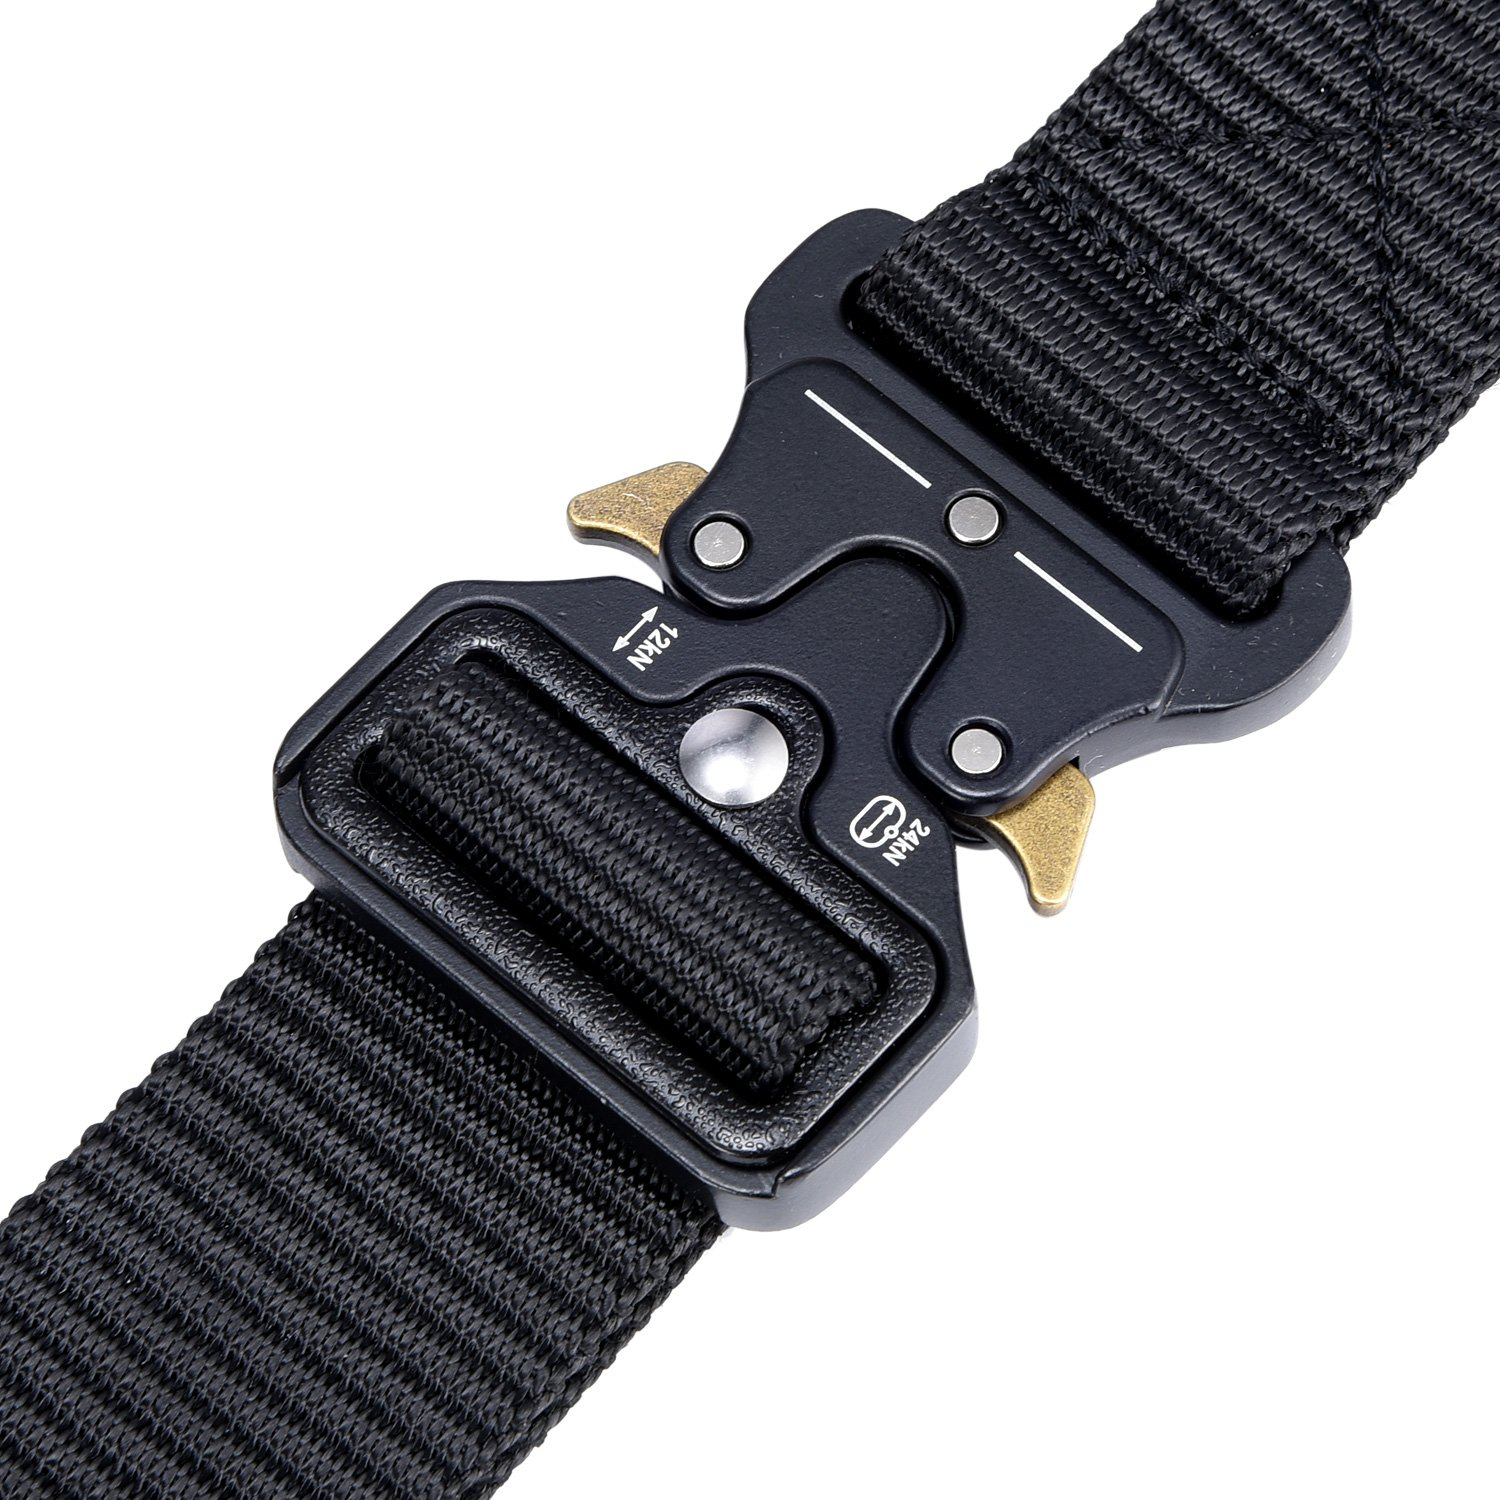 Military Tactical Belt,Quick Release Buckle, Long 43''-55'' Wide1.5'',Heavy Duty Waist Belt (Black, 47 inch) by MarkPorda (Image #4)